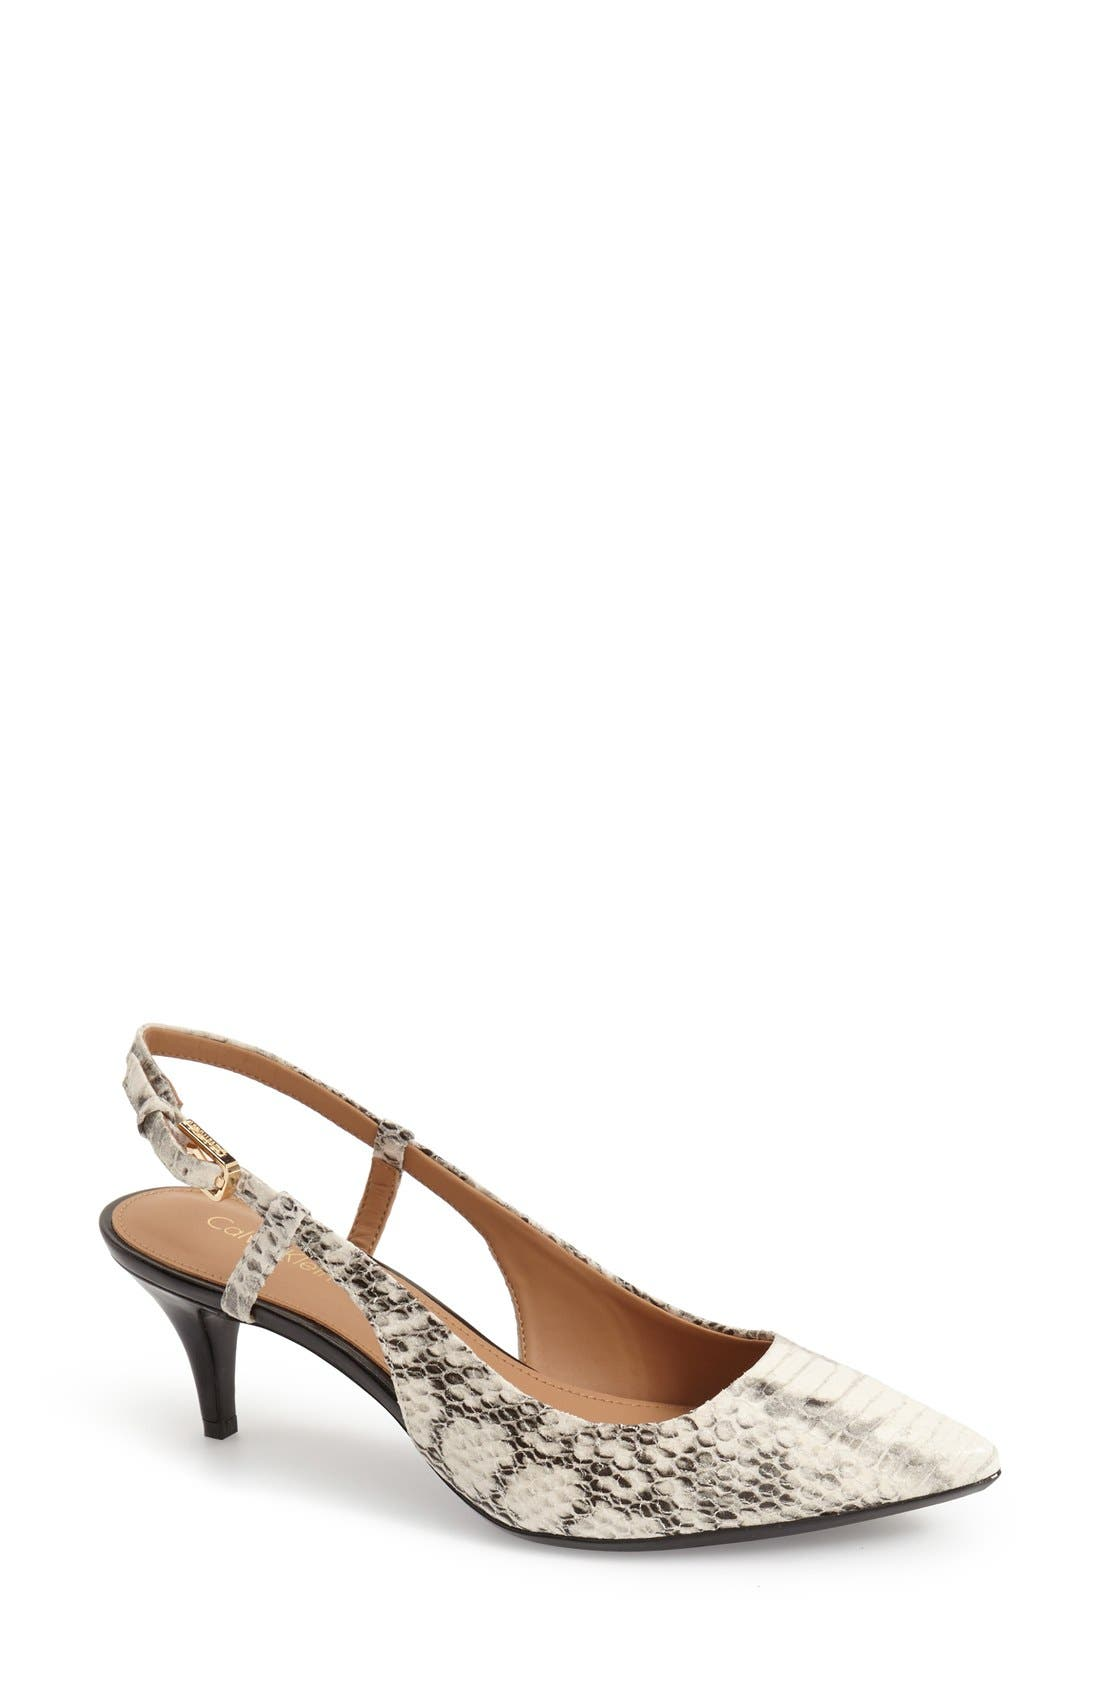 Alternate Image 1 Selected - Calvin Klein 'Patsi' Slingback Pointy Toe Pump (Women)